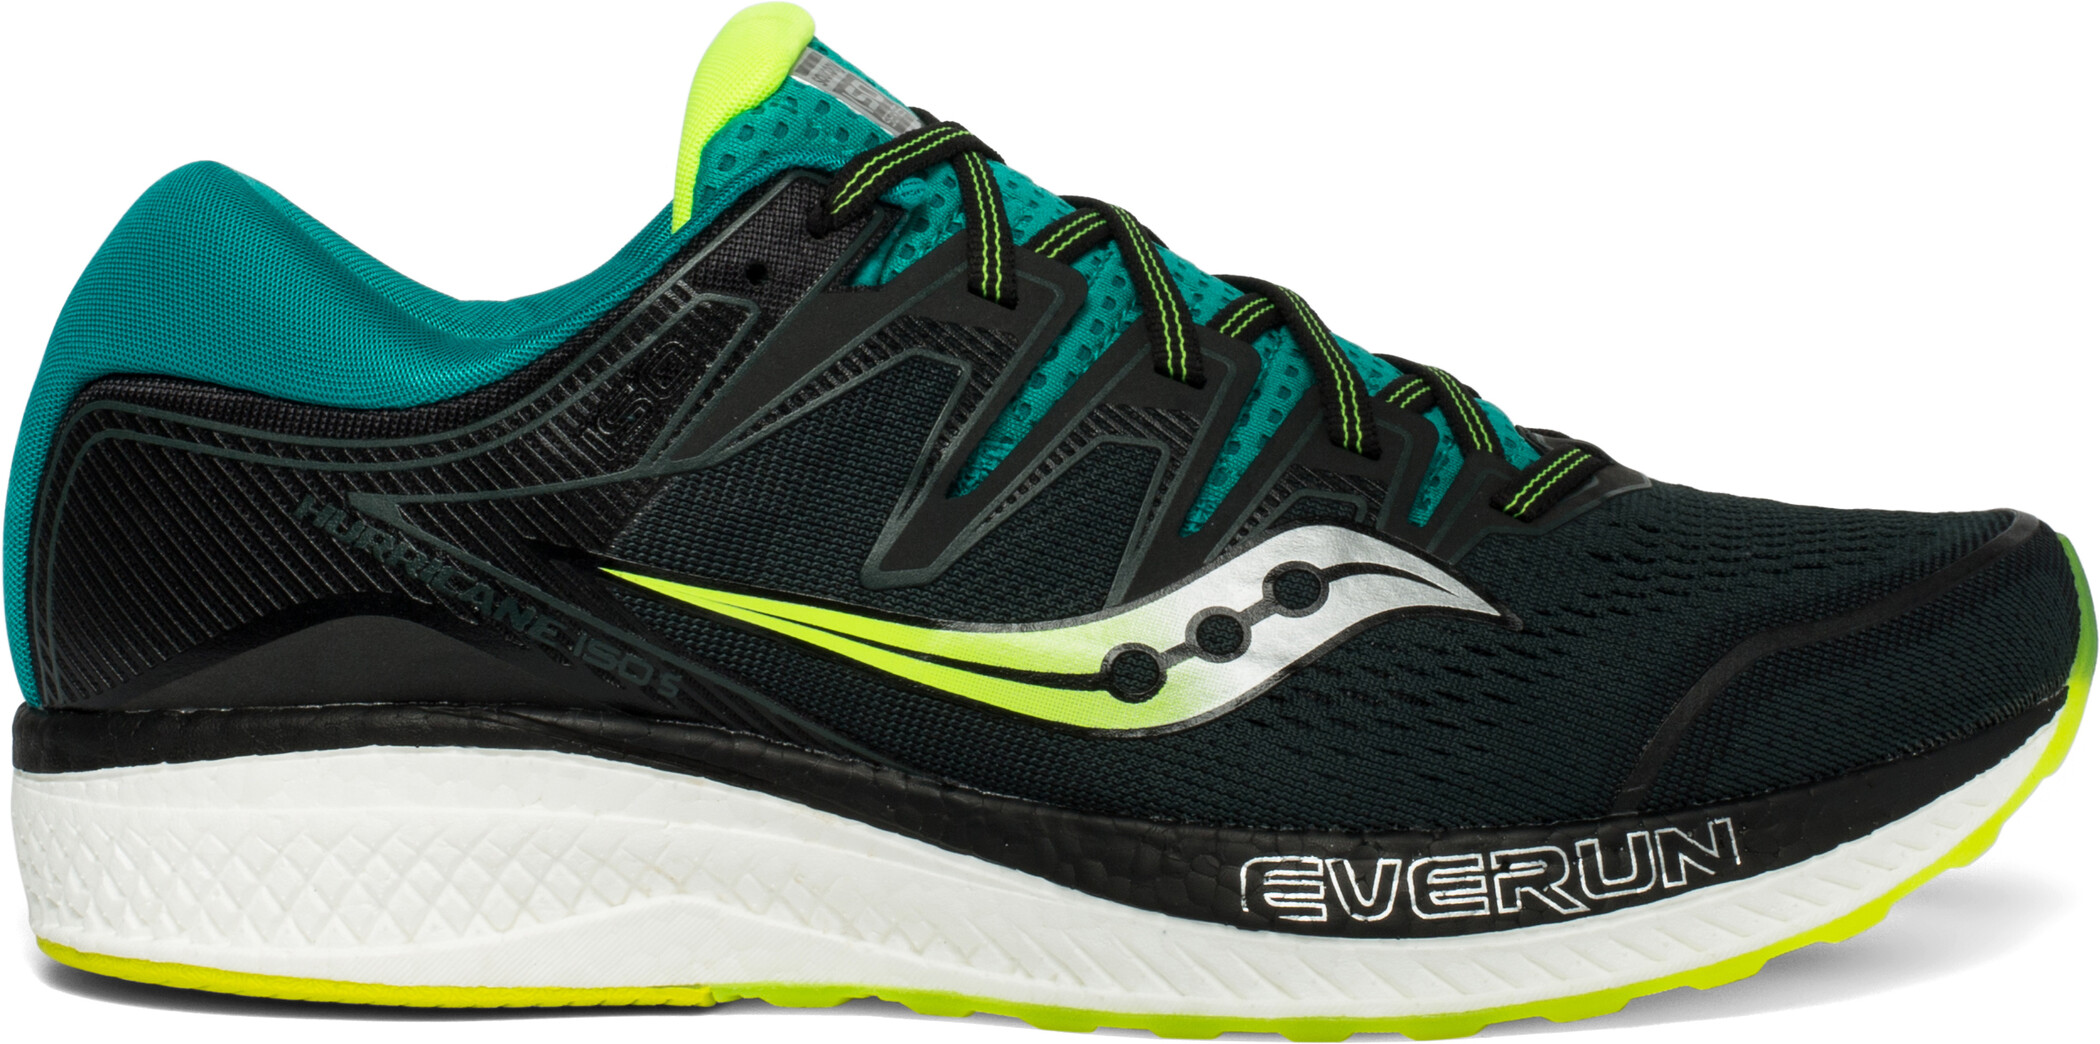 saucony Hurricane ISO 5 Shoes Men, green/teal (2019) | Shoes and overlays